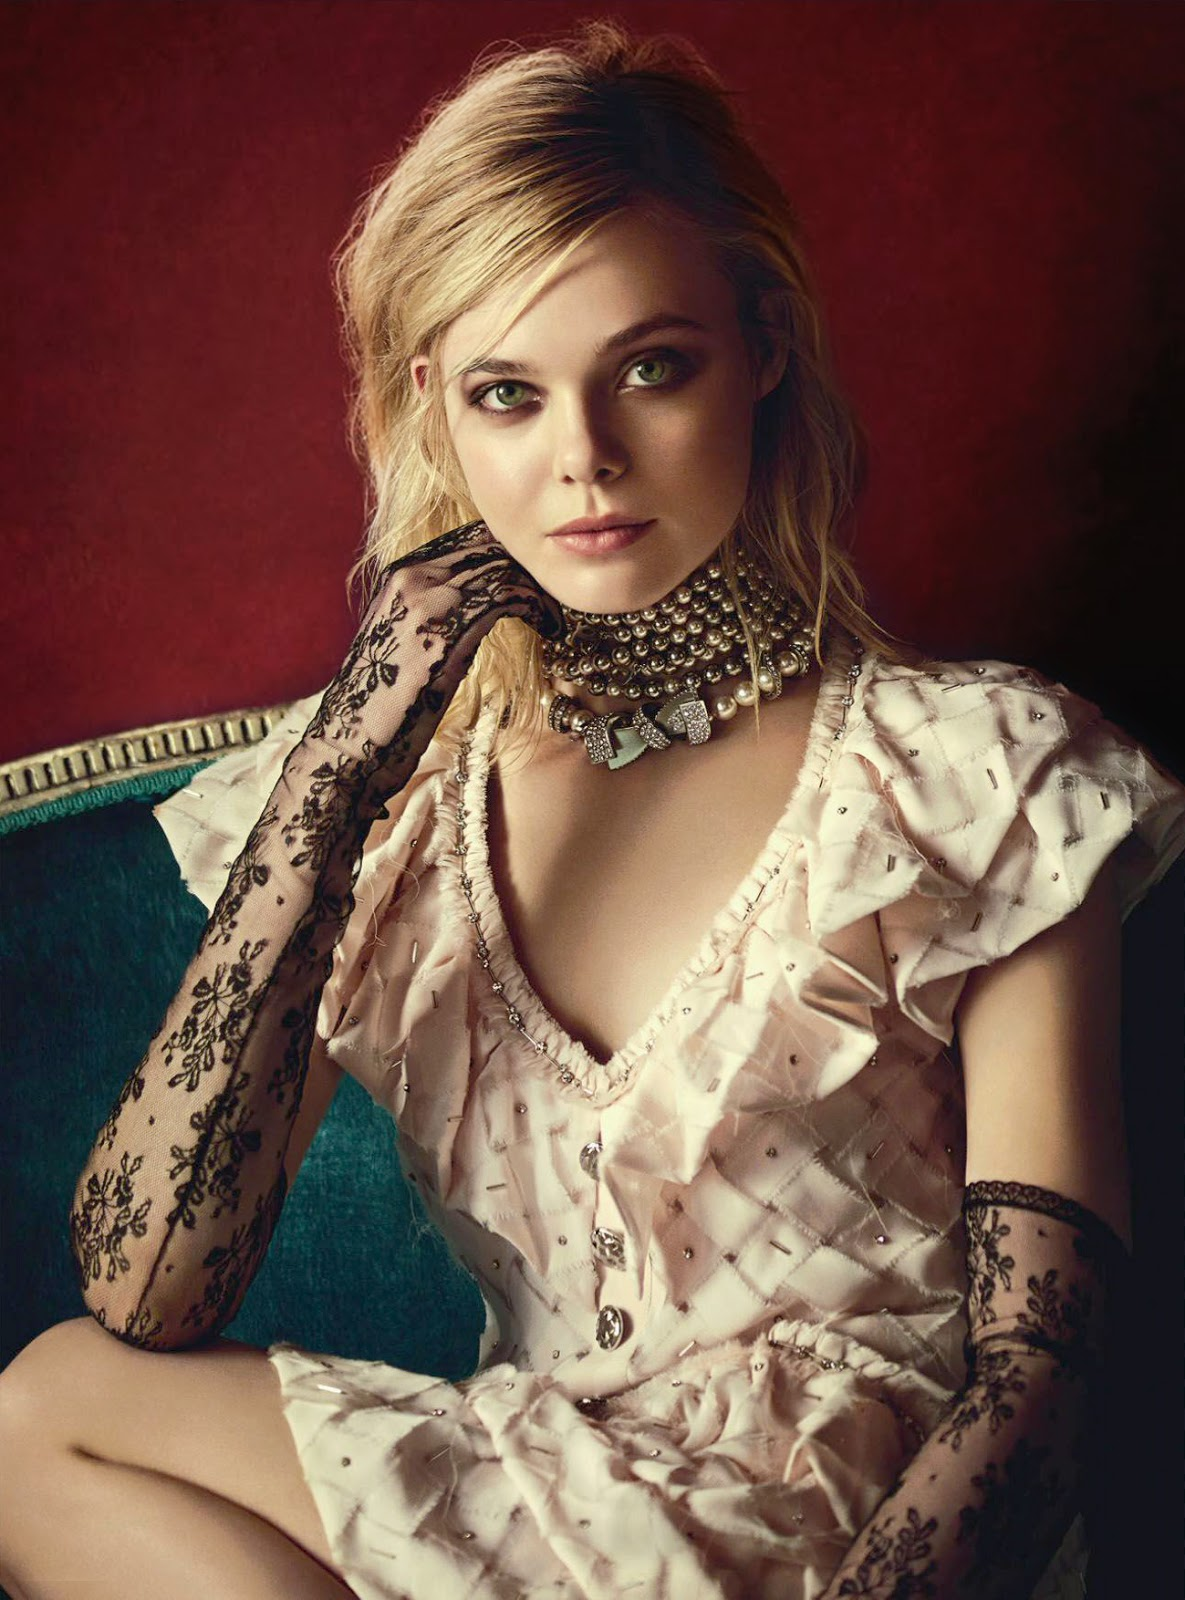 Elle Fanning Covers Fashion Magazine Says She Loves Being: Elle Fanning In Vogue Australia March 2016 By Boo George